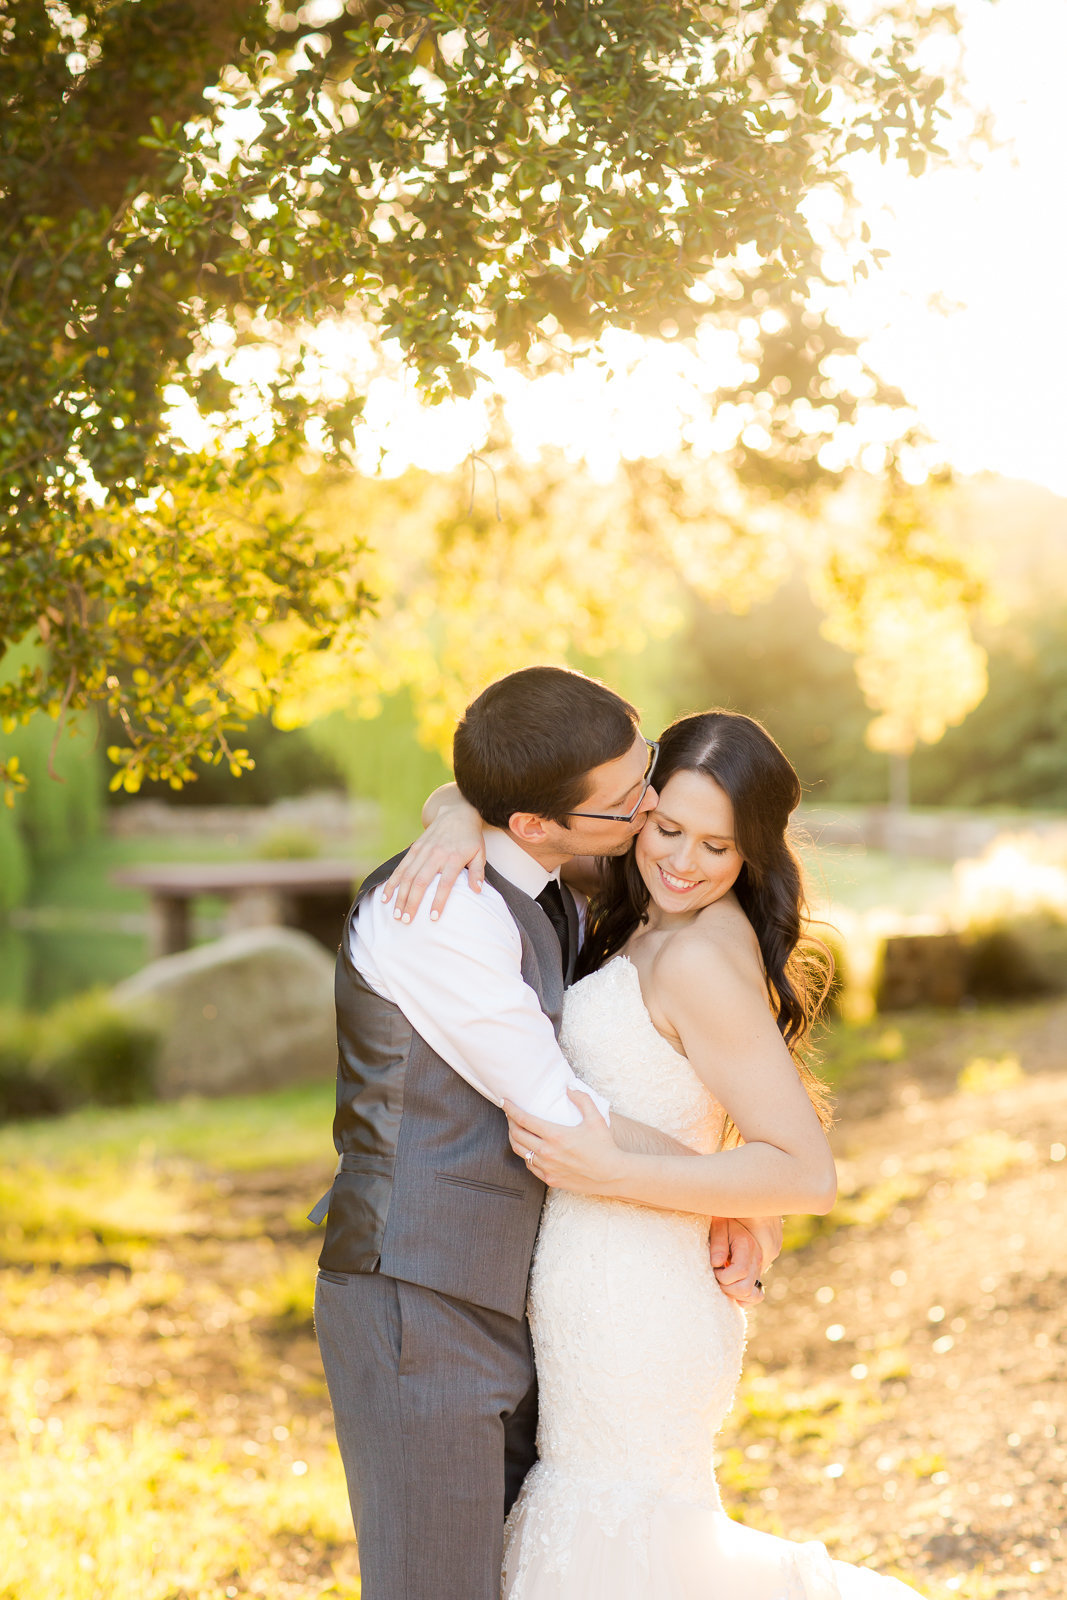 Bride and Groom Wedding Photo Ideas Theresa Bridget Photography Photo-6041